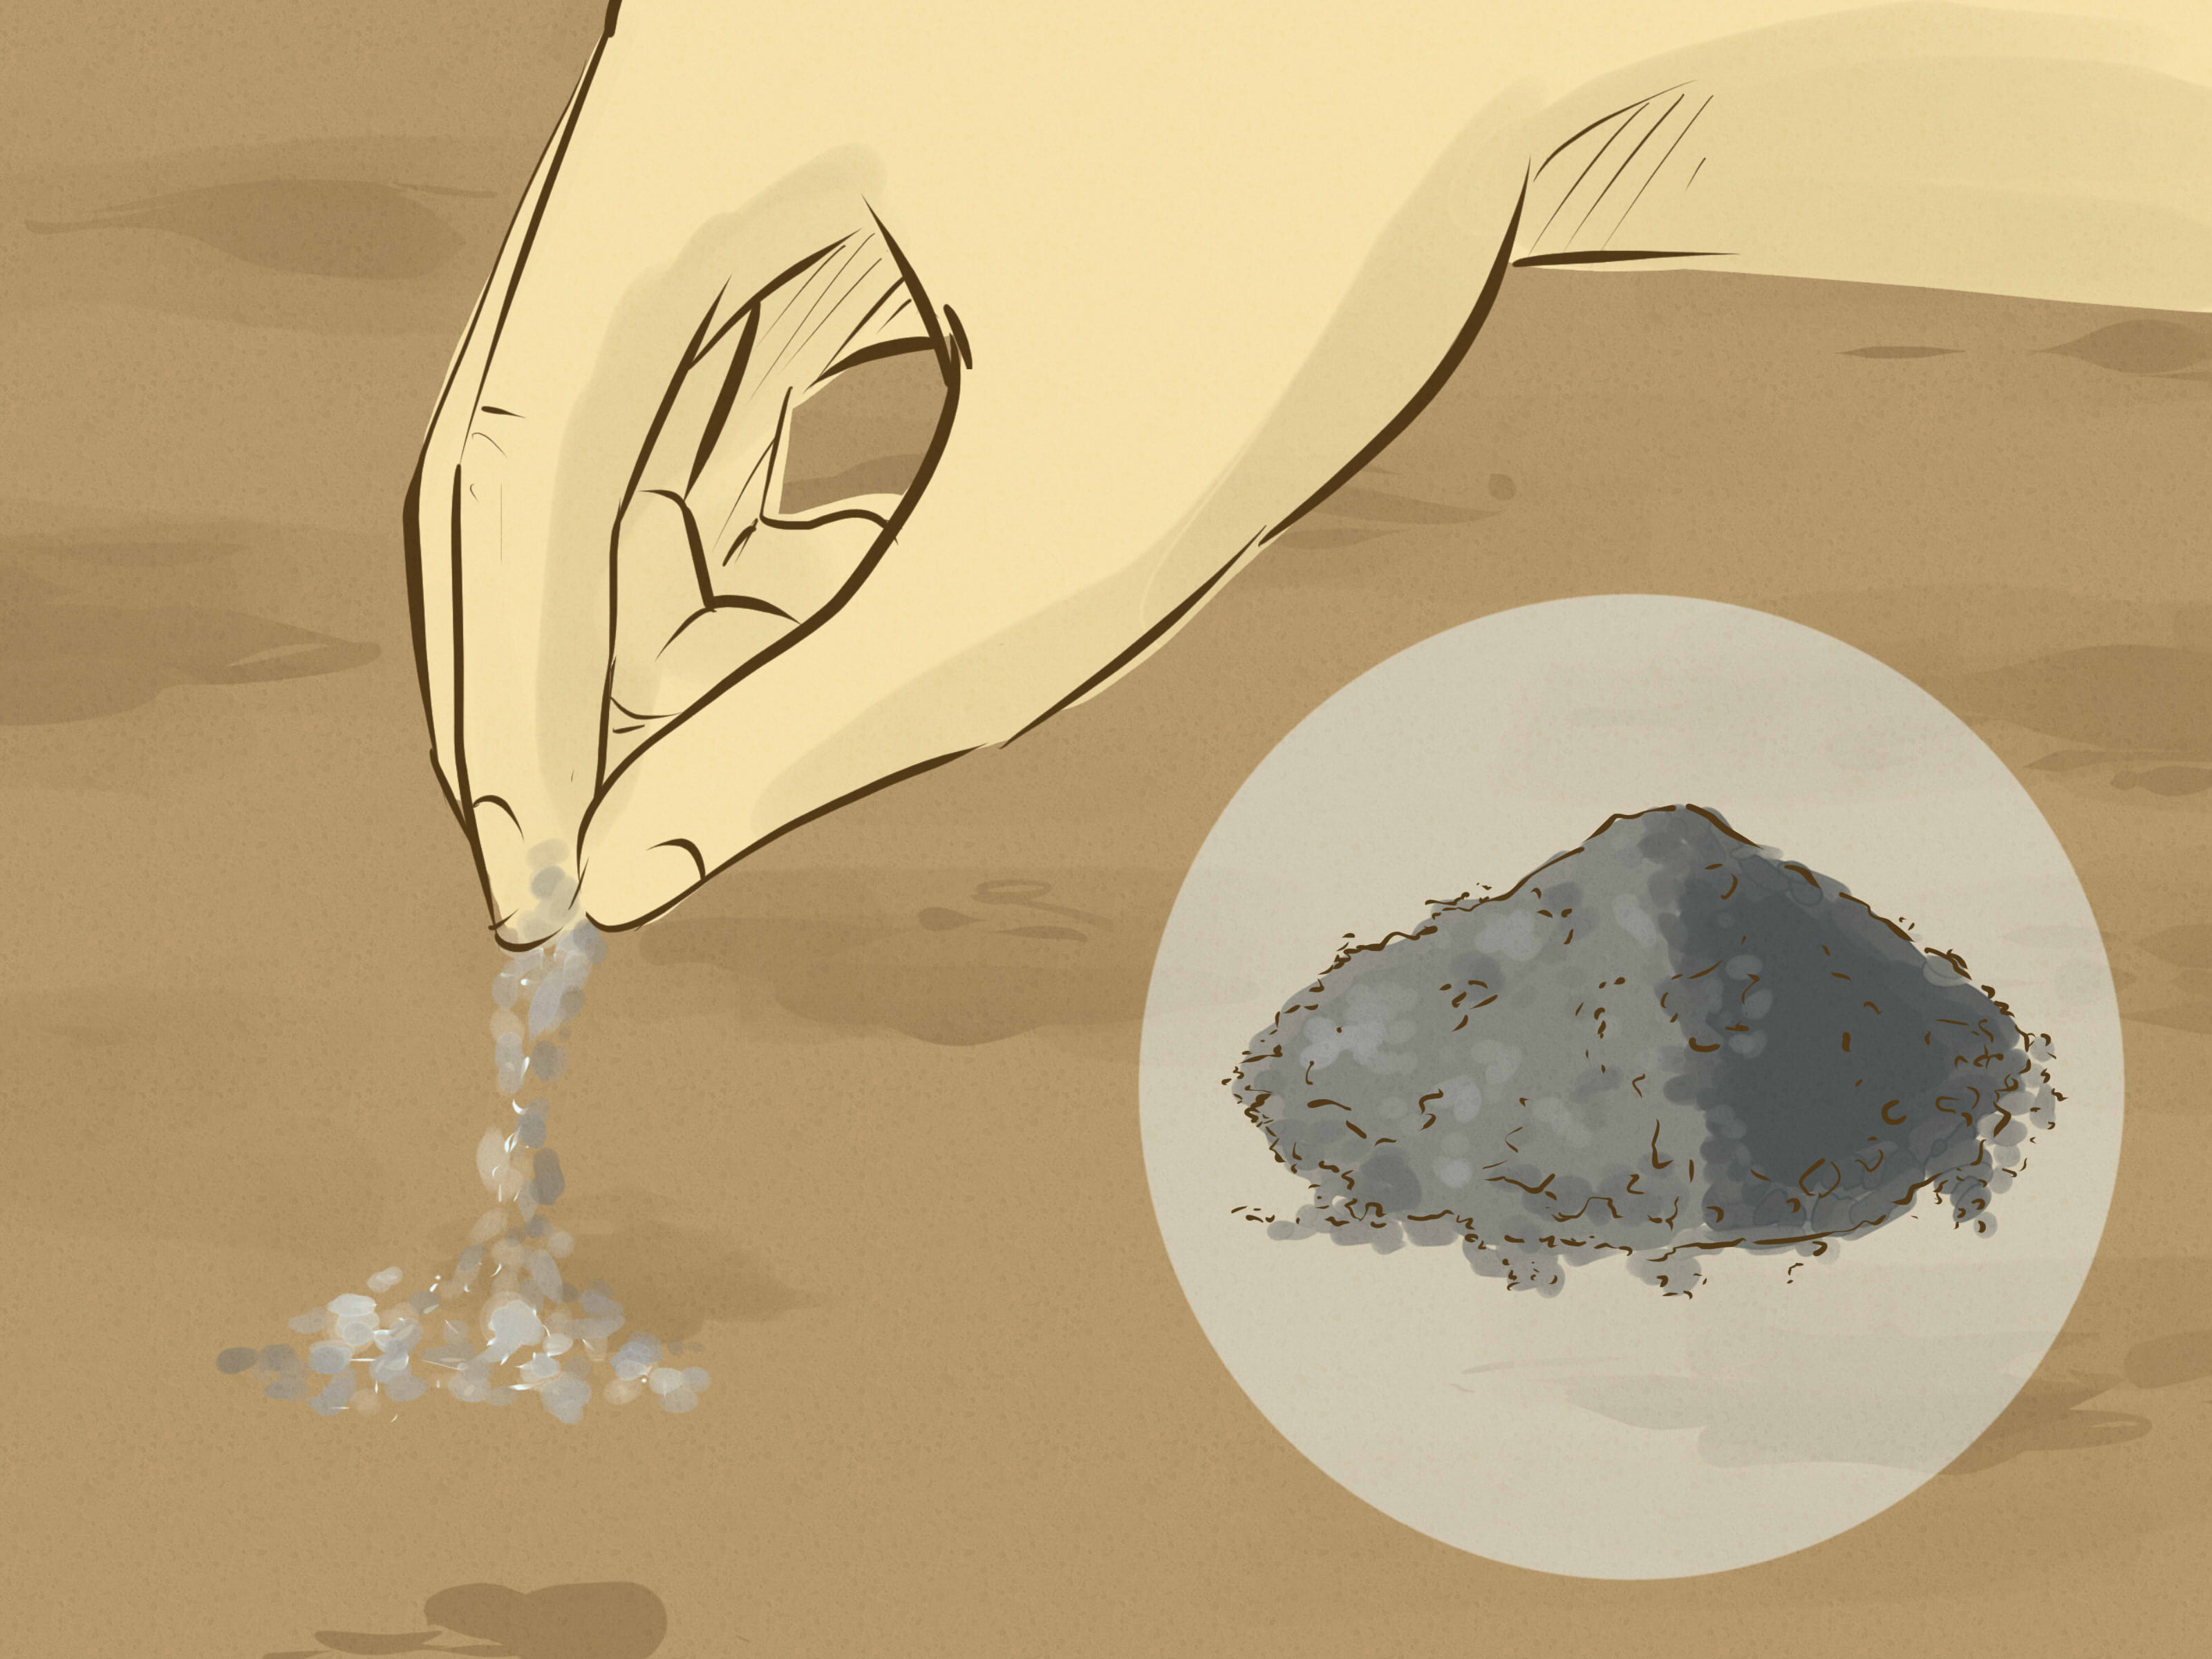 How To Conserve Soil 12 Steps With Pictures Wikihow